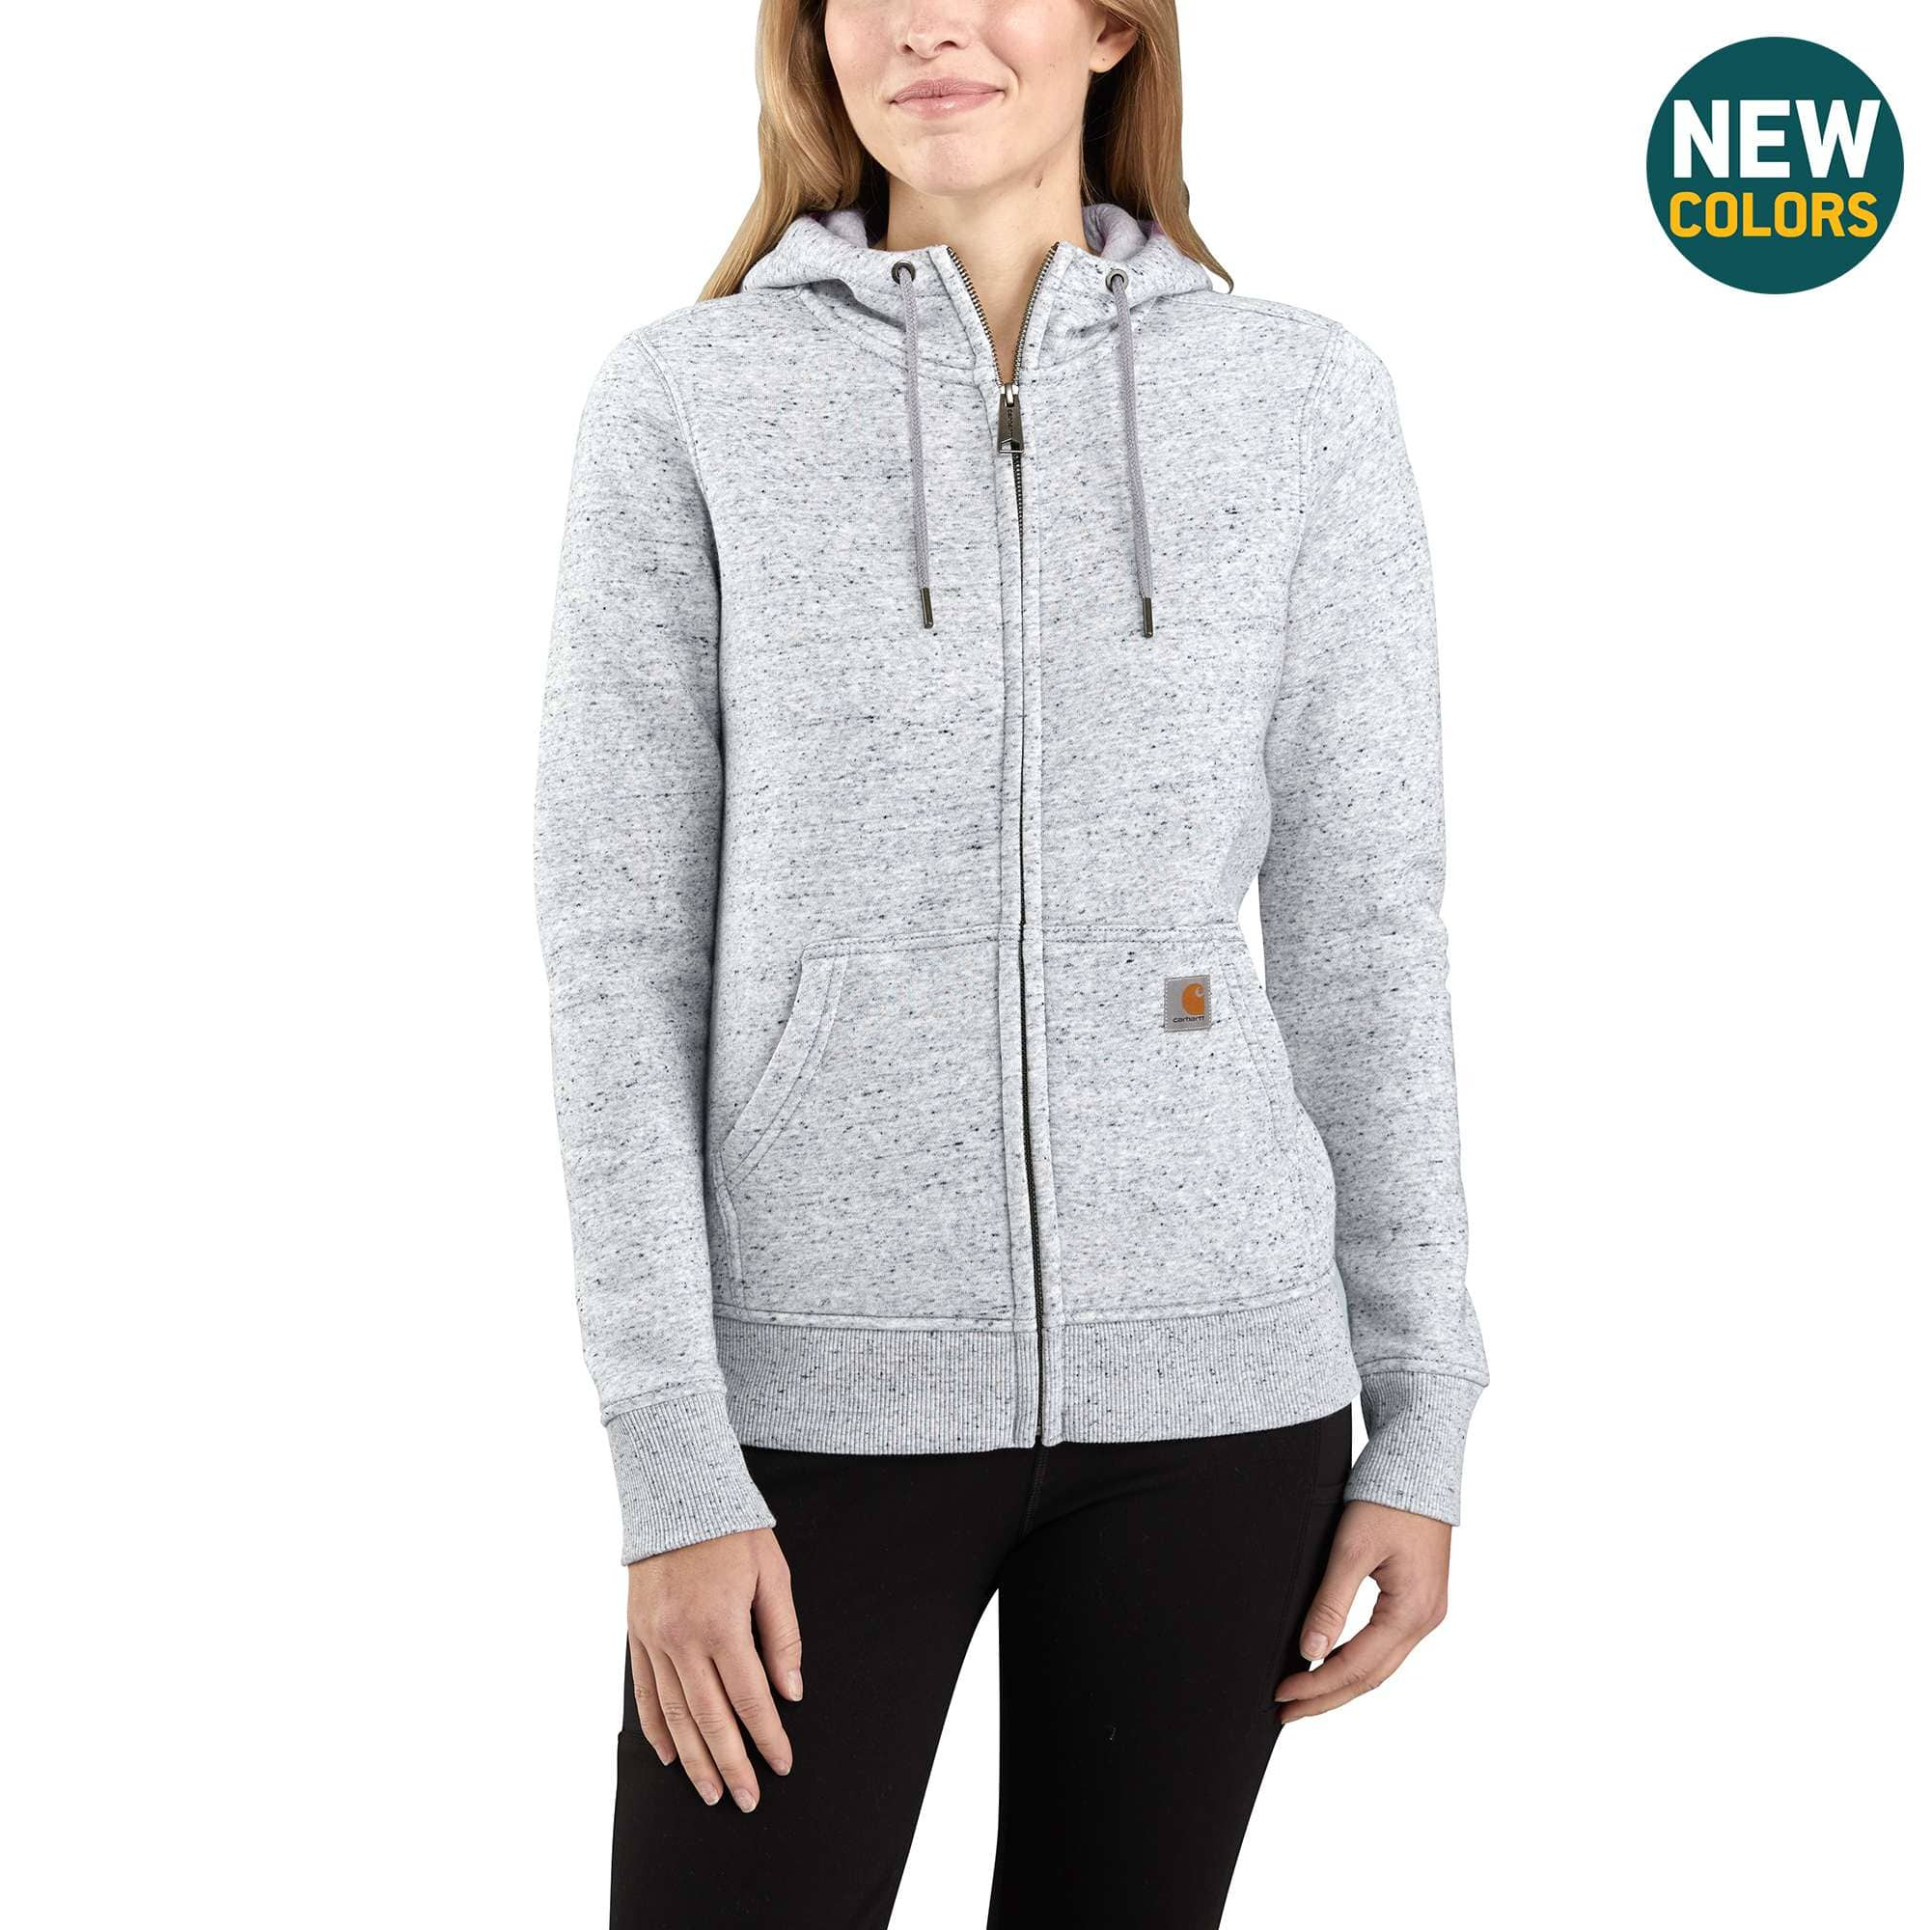 Picture of Clarksburg Full-Zip Hoodie in Asphalt Heather Nep